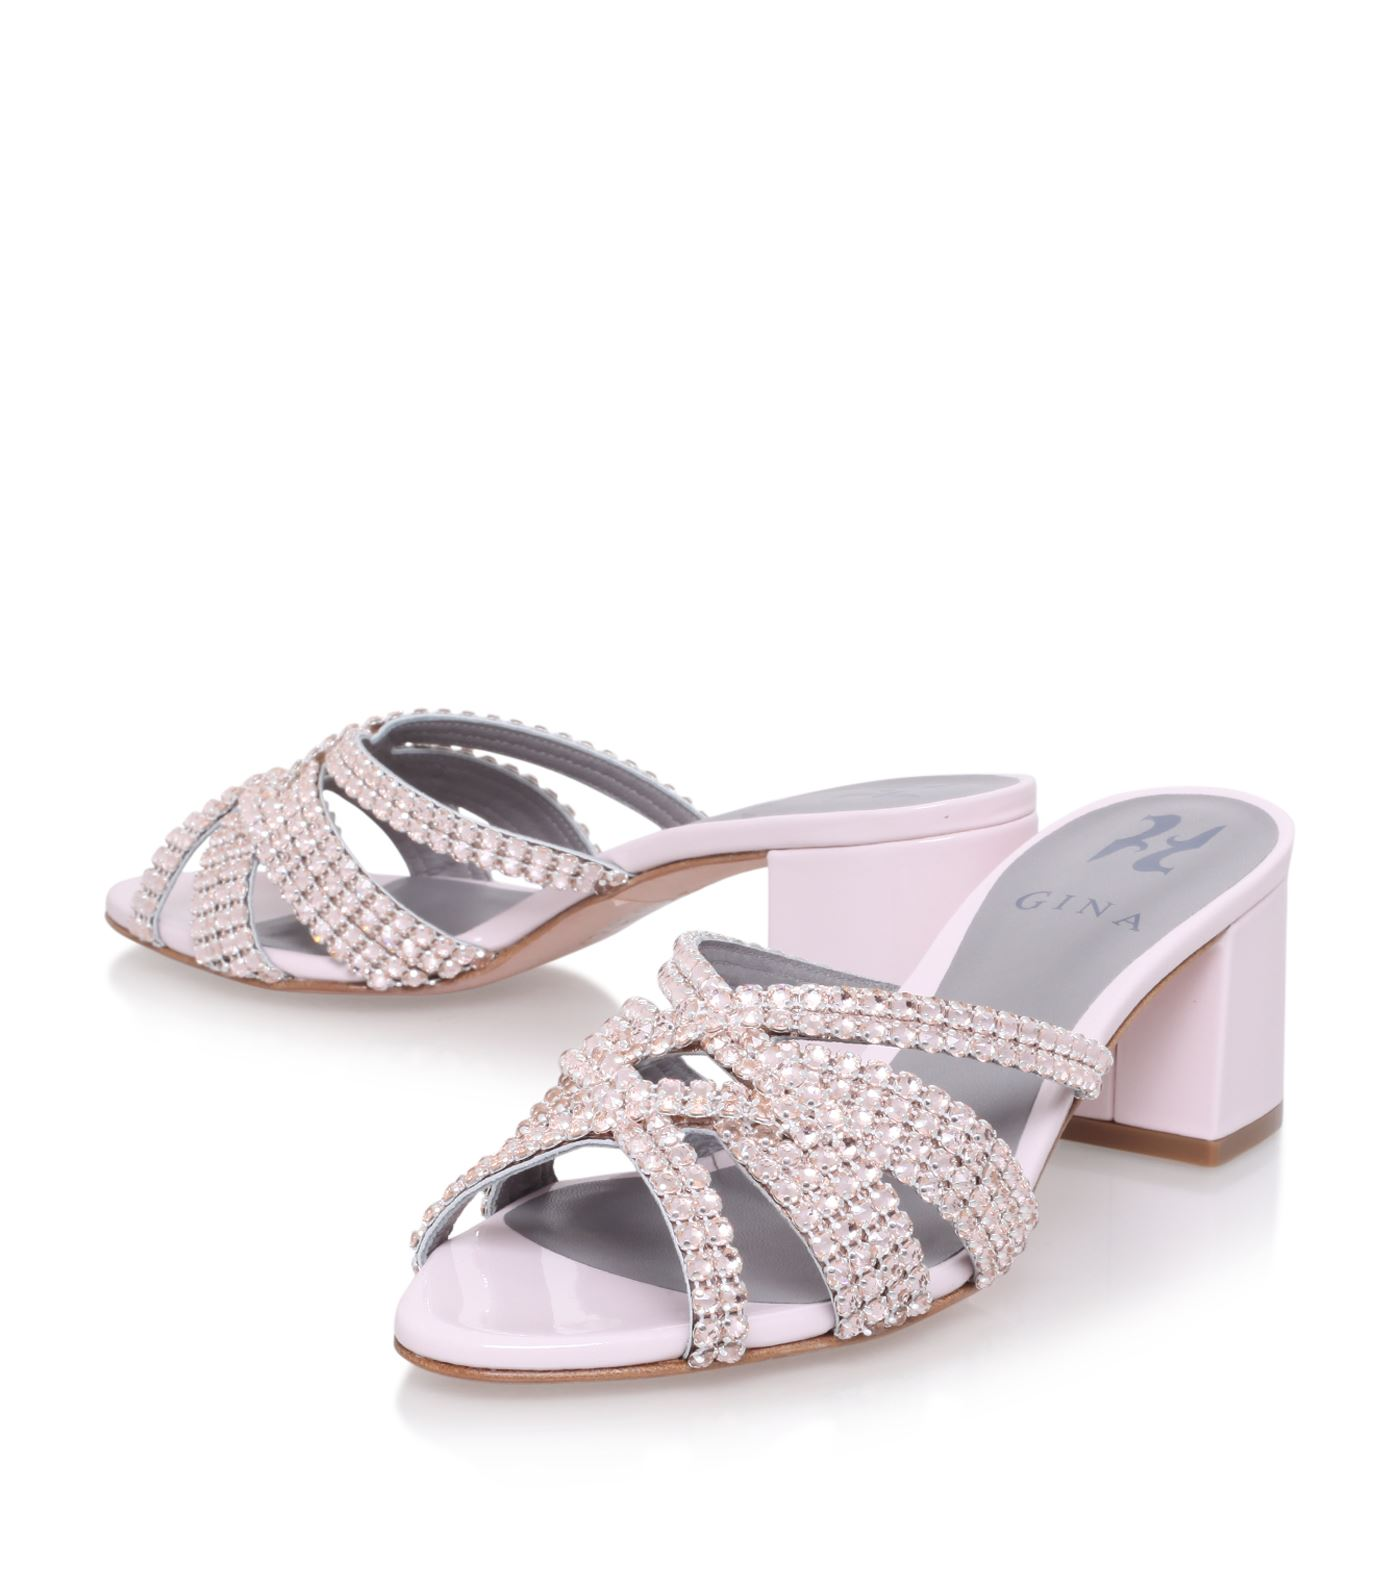 gina shoes ... shoes: heeled sandals gina dexie sandals ztnwetj